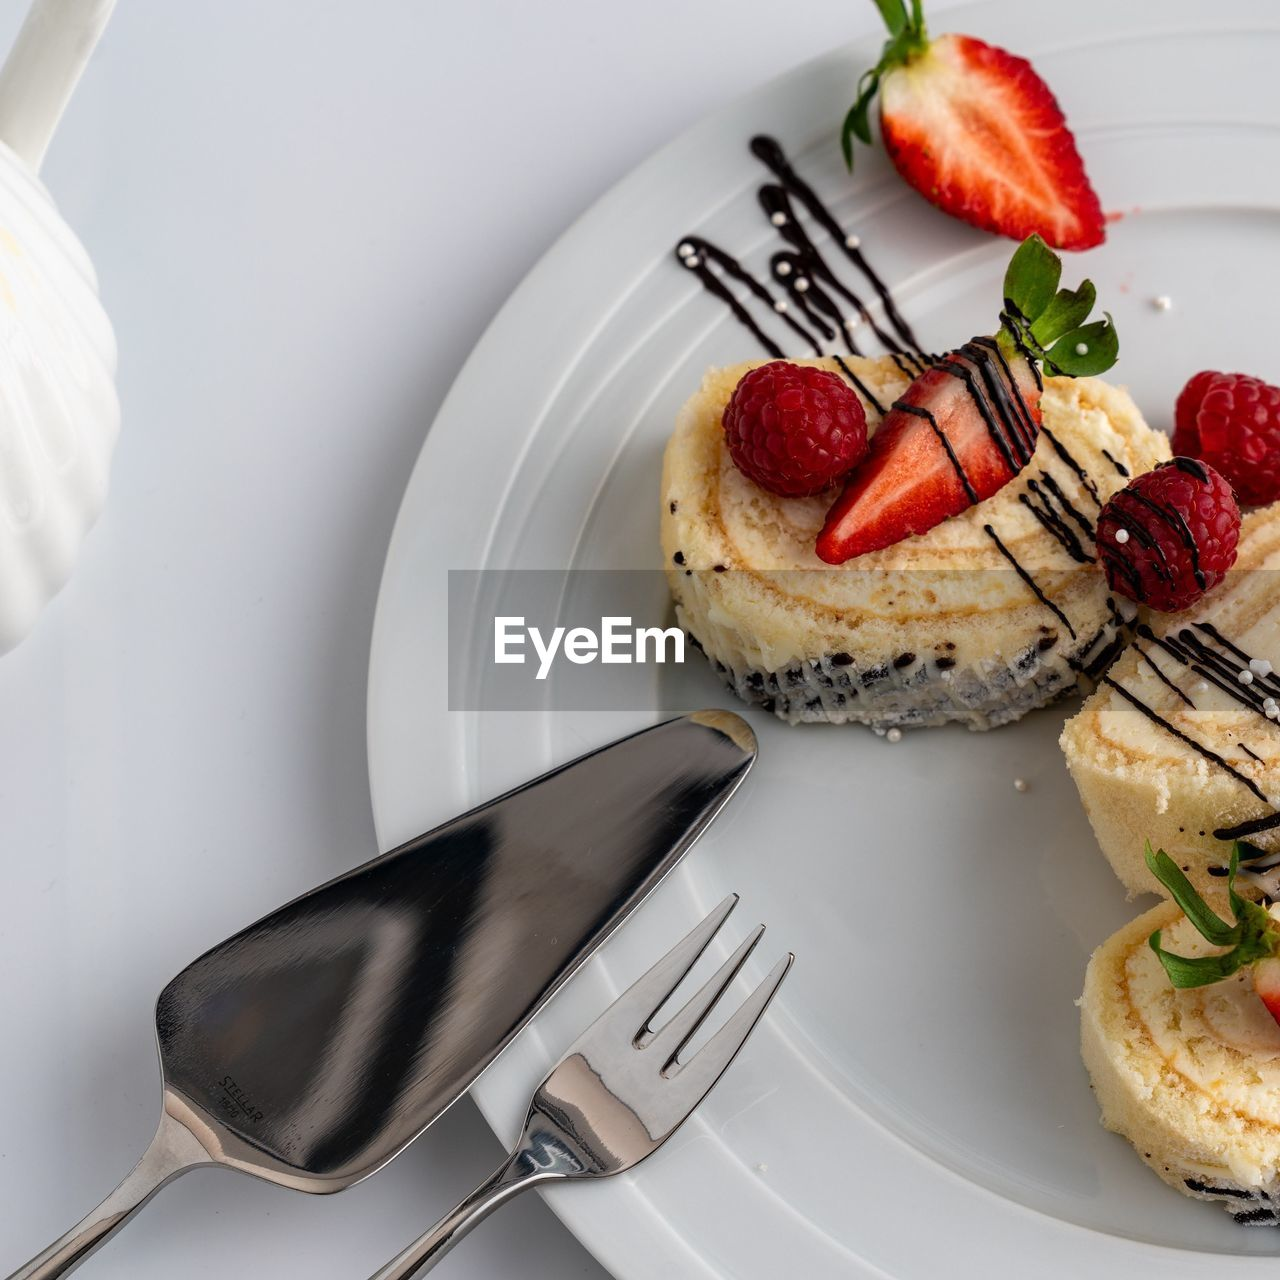 HIGH ANGLE VIEW OF DESSERT ON PLATE